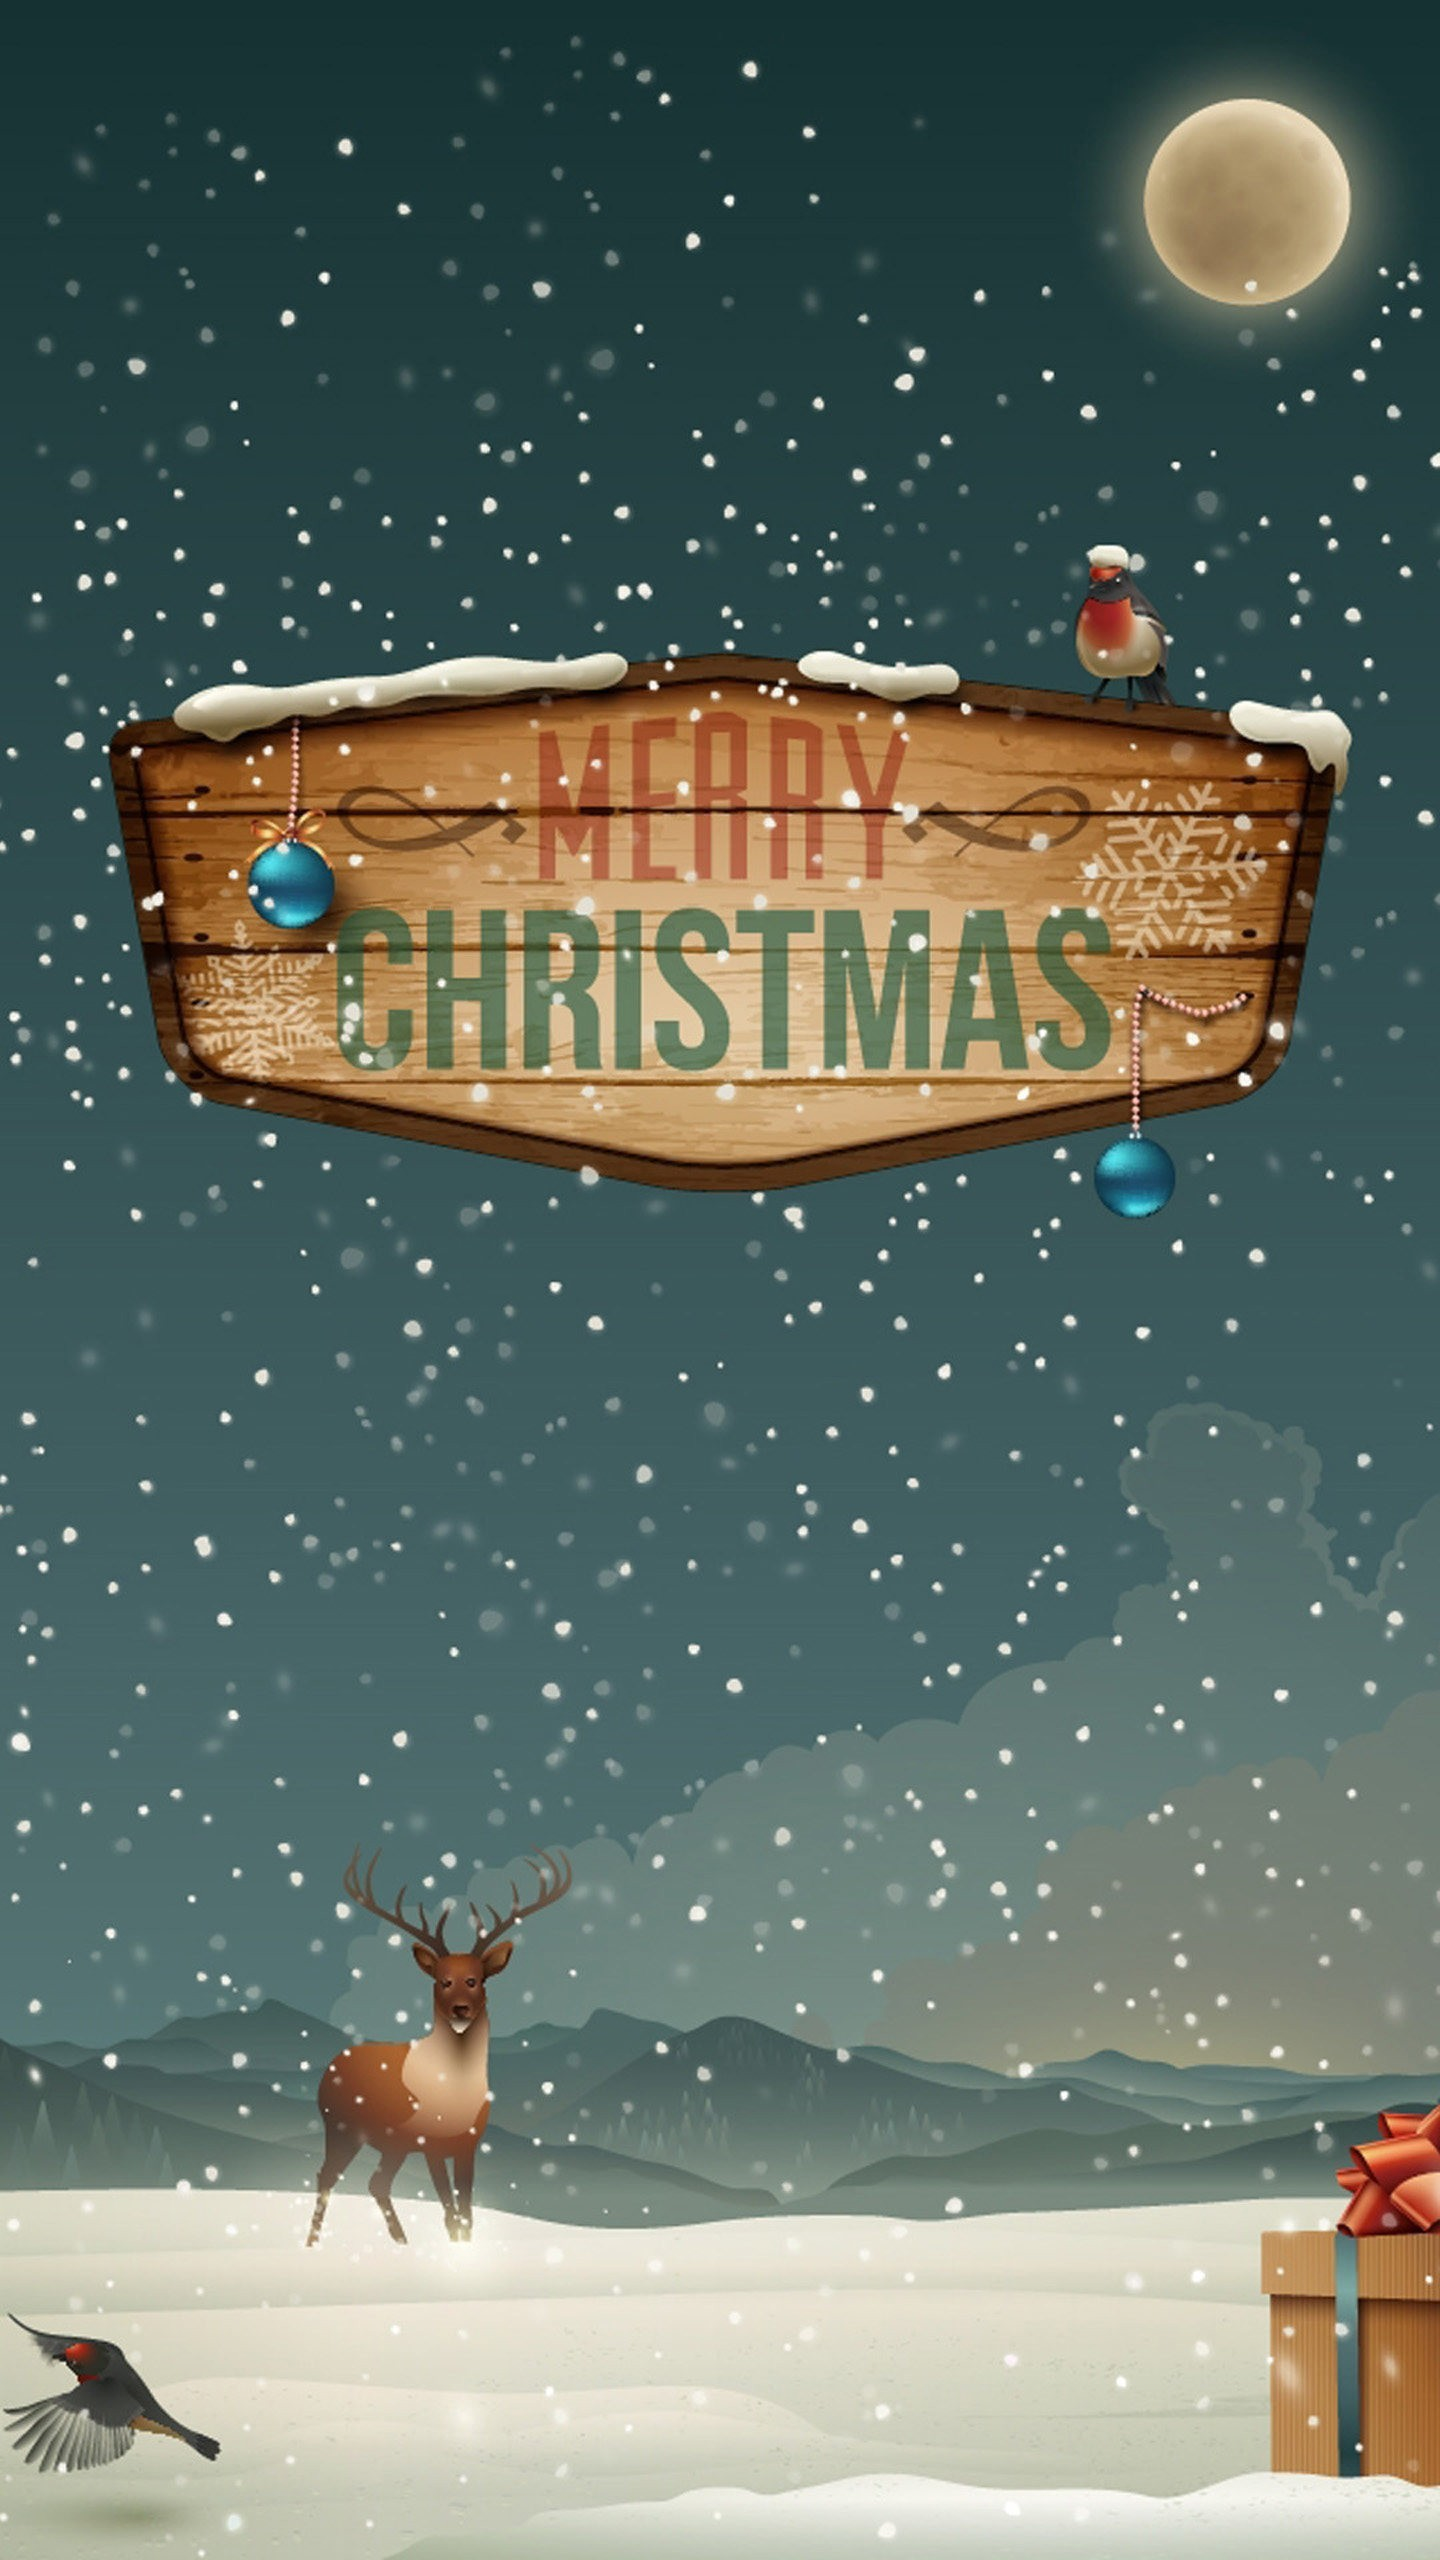 Christmas HD Wallpapers For Galaxy S7 Edge Wallpapers